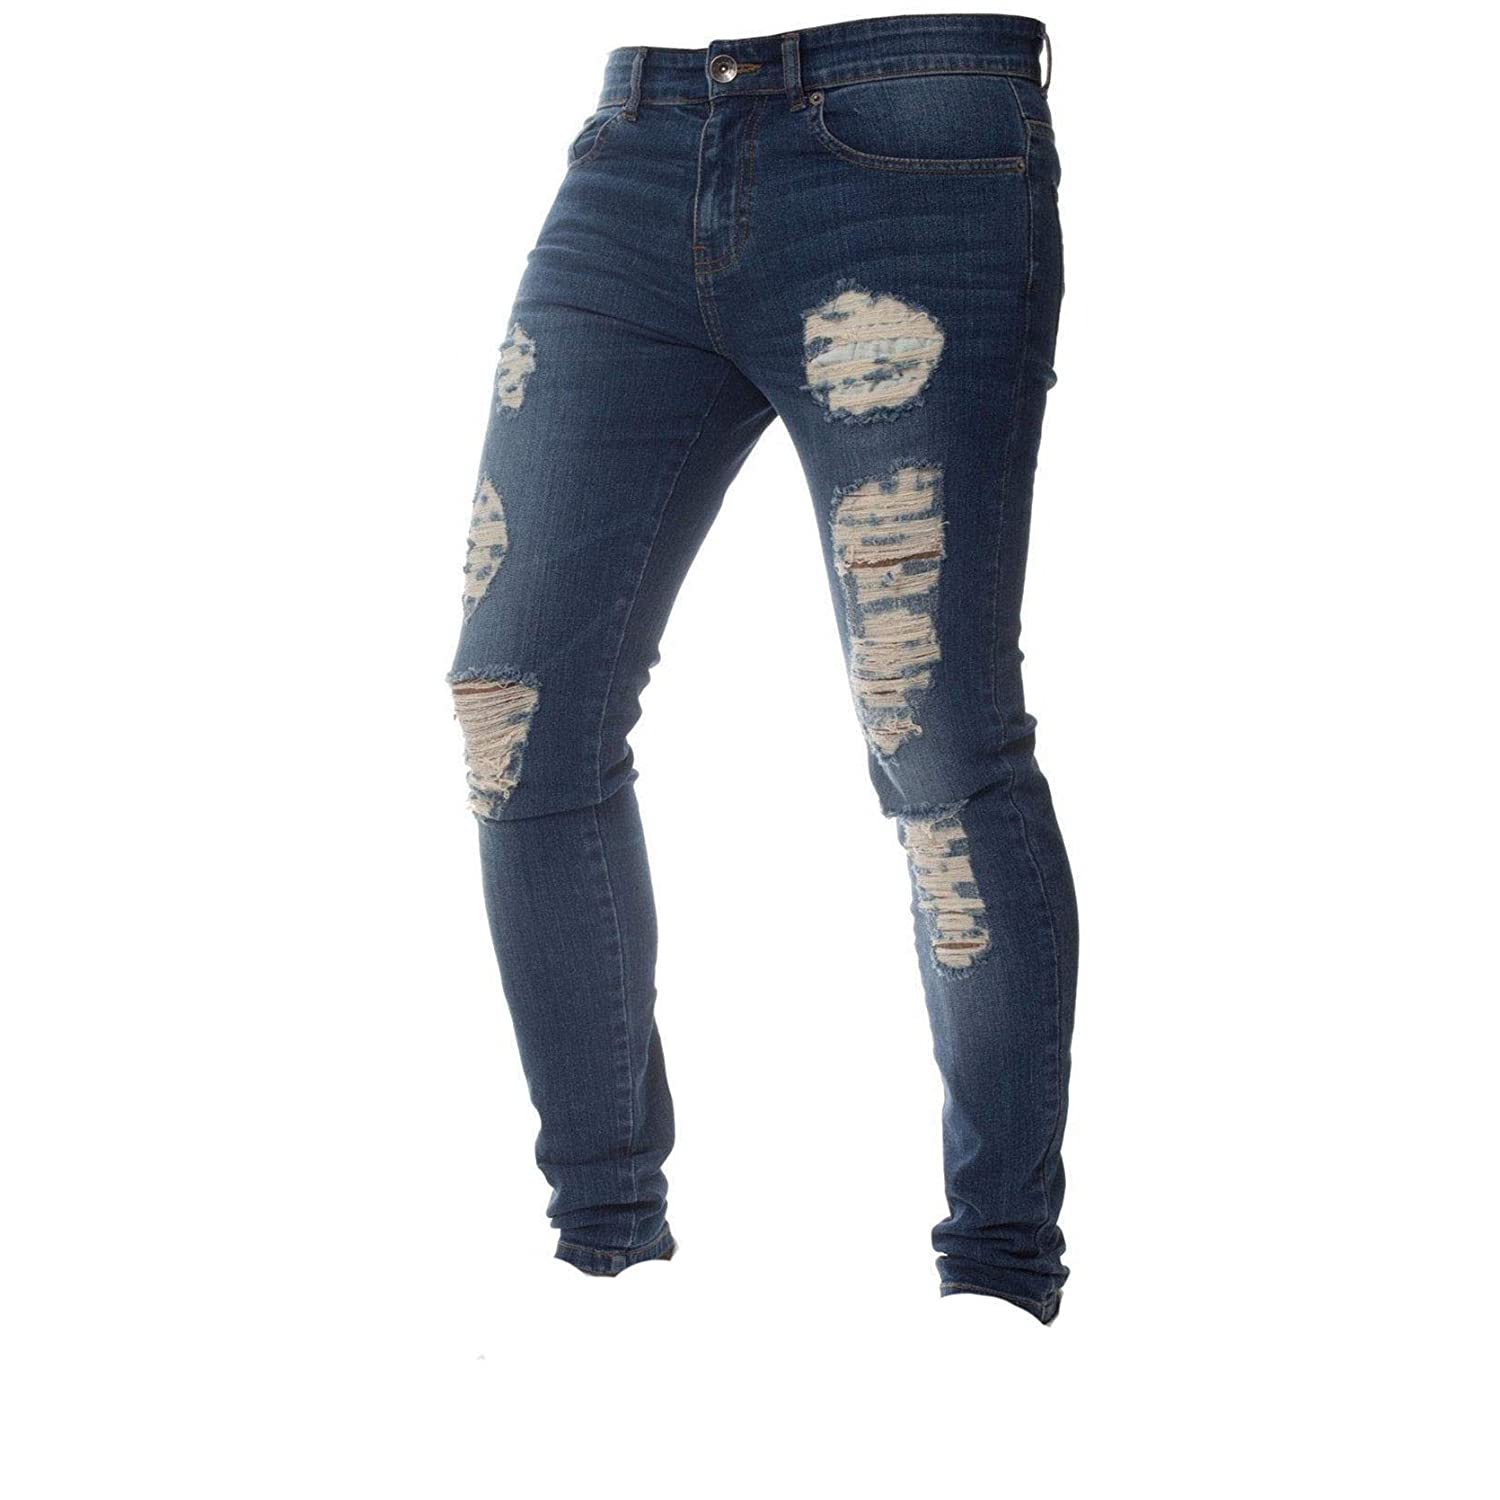 Men's Skinny Jeans Stretch Ripped Ultra-Cheap Deals Limited price Di Leg Destroyed Tapered